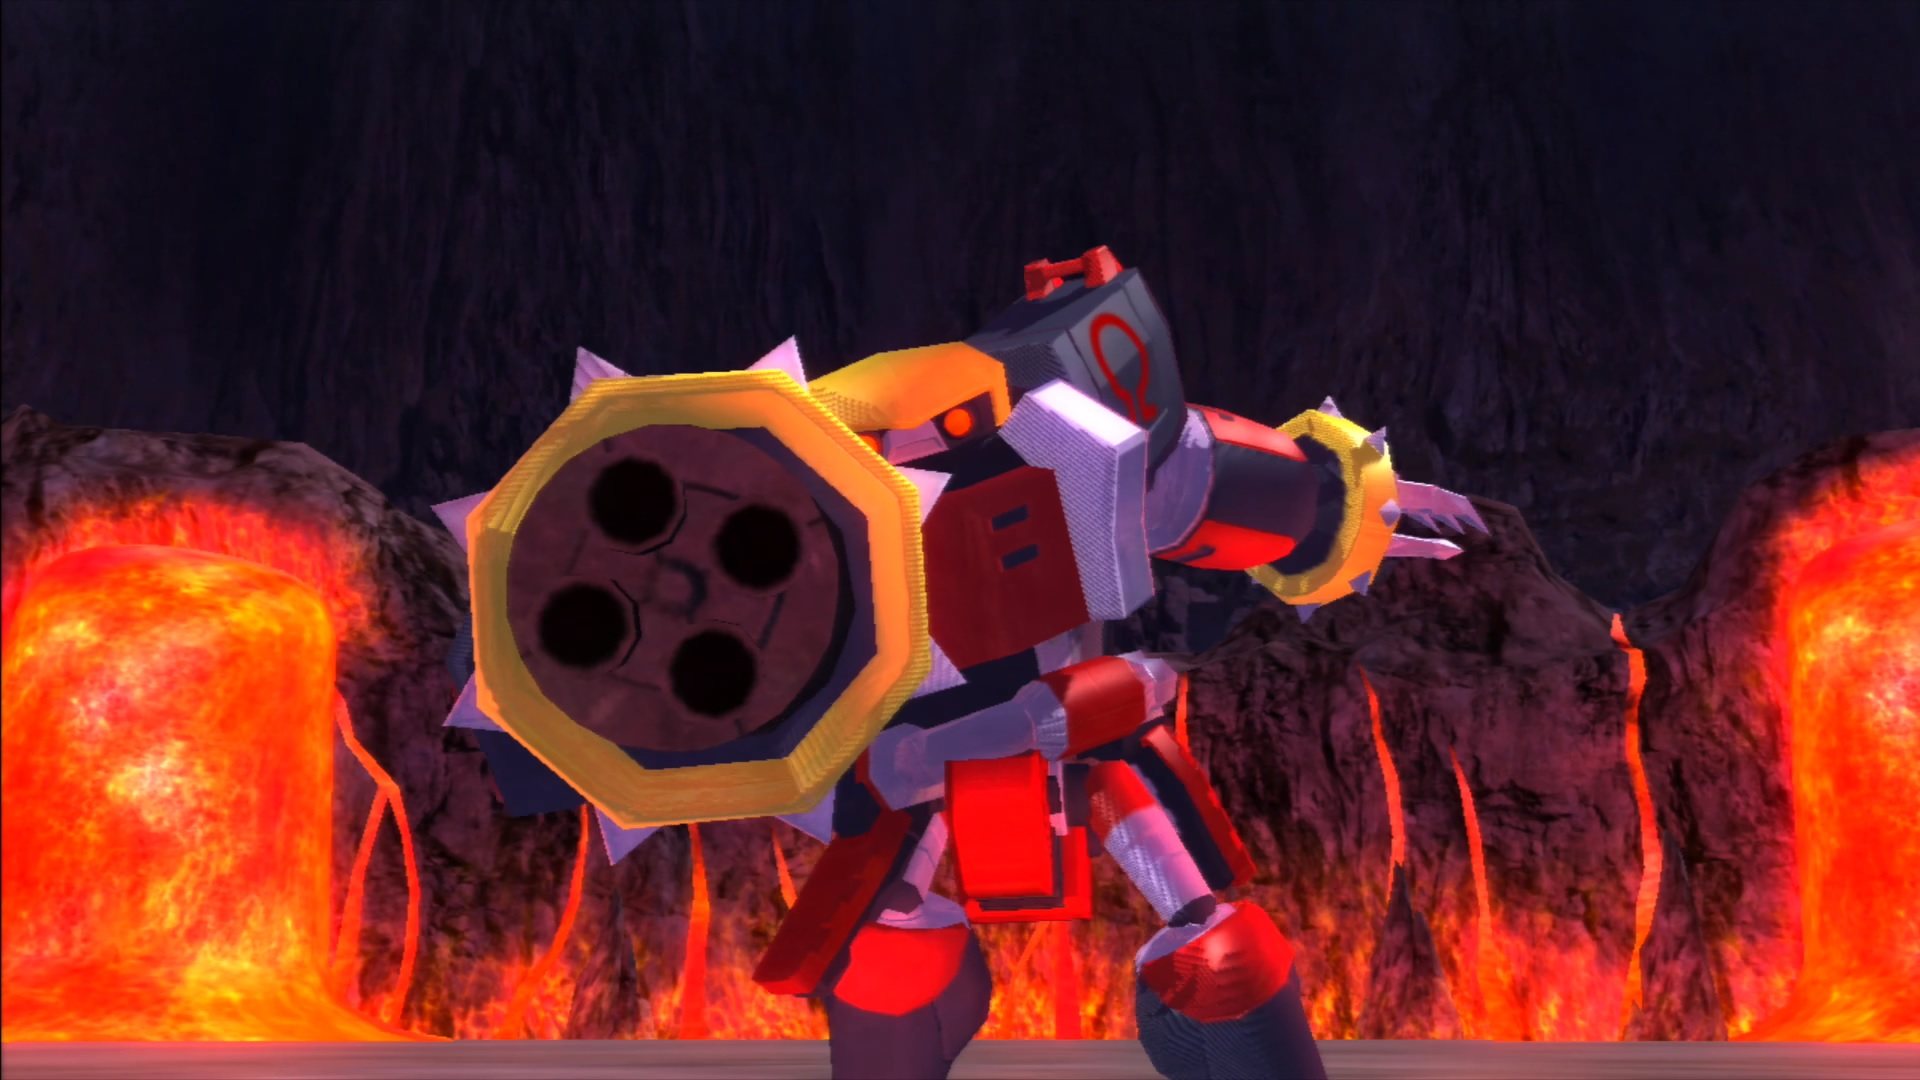 File:E 123 omega on flame core by chaos0 teamemerald-d3dyef6.jpg